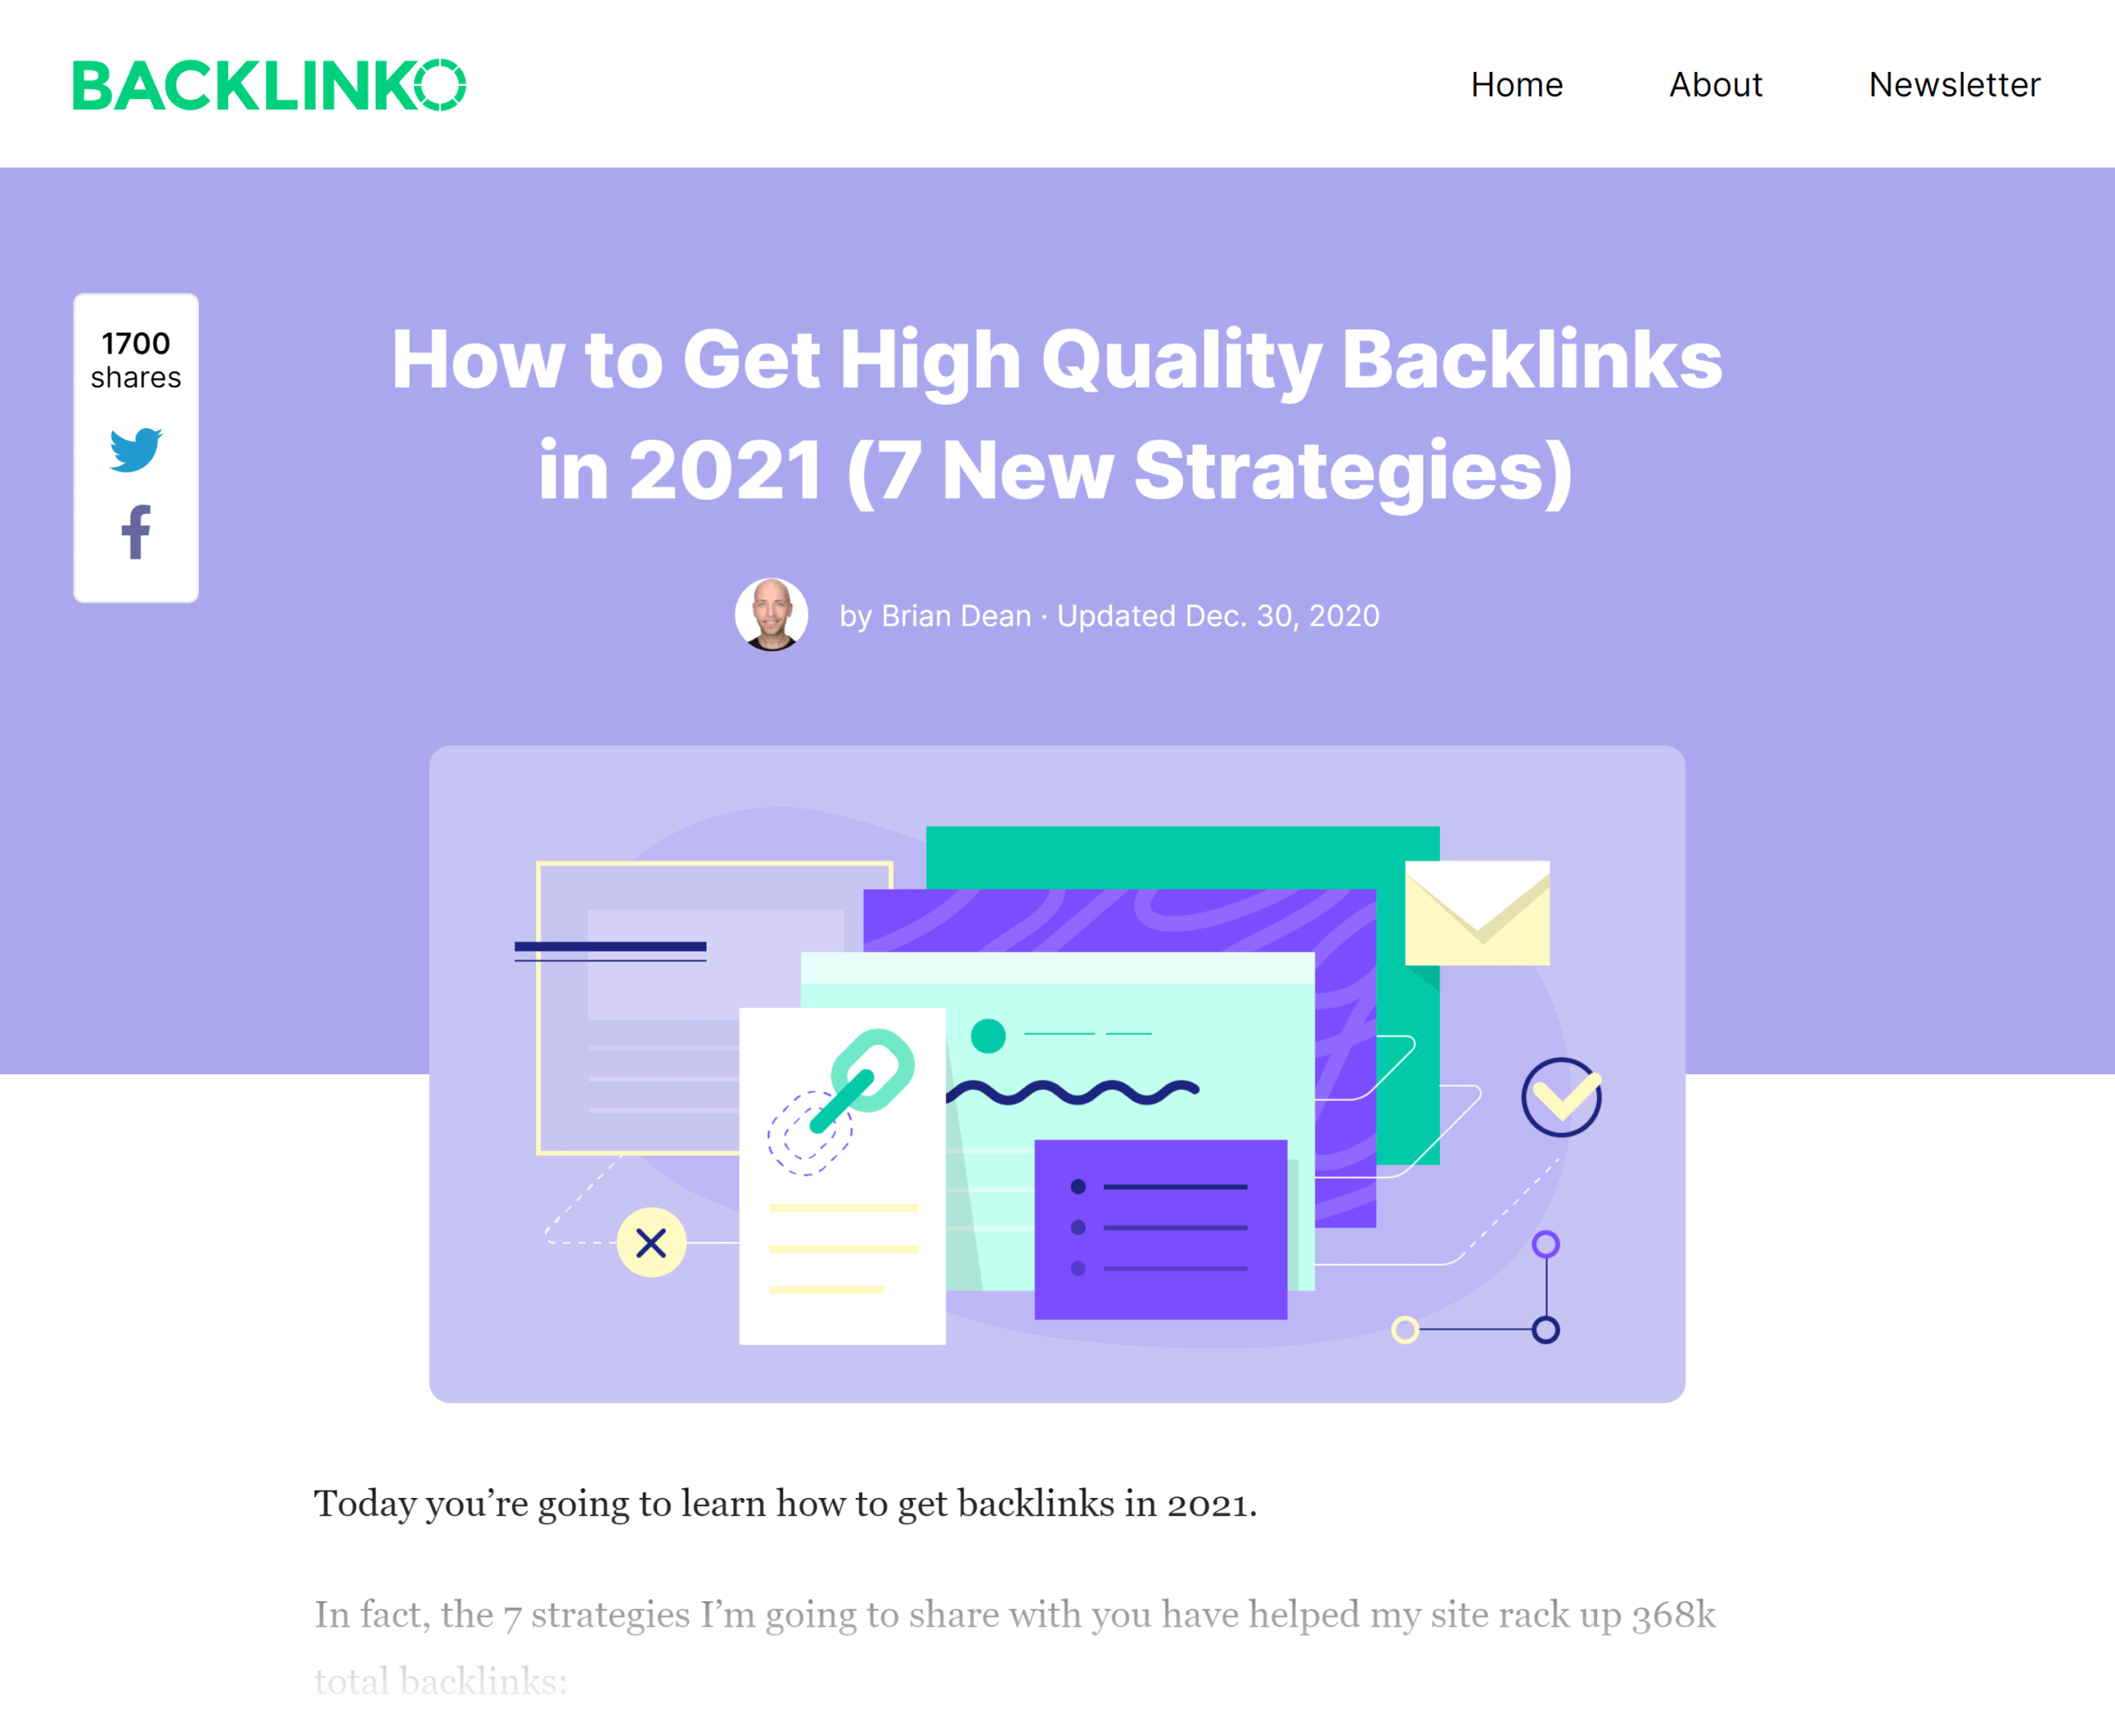 Backlinko – High quality backlinks